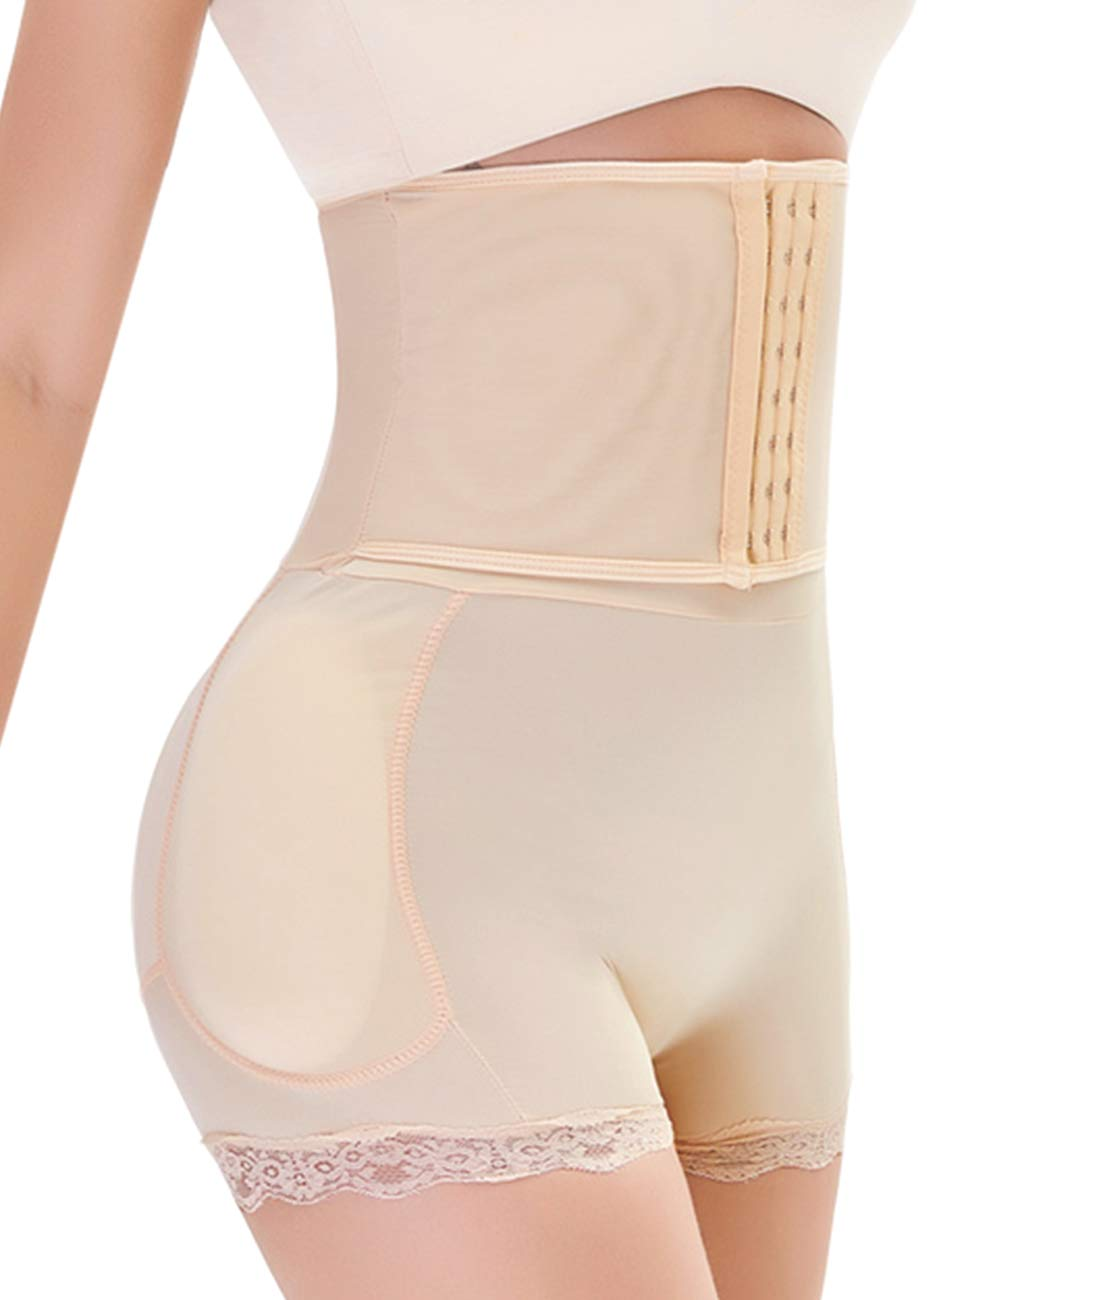 Women Tummy Control Shorts Body Shaper Padded Butt Briefs Booster Hip Enchancer Underwear Slimming Shapewear